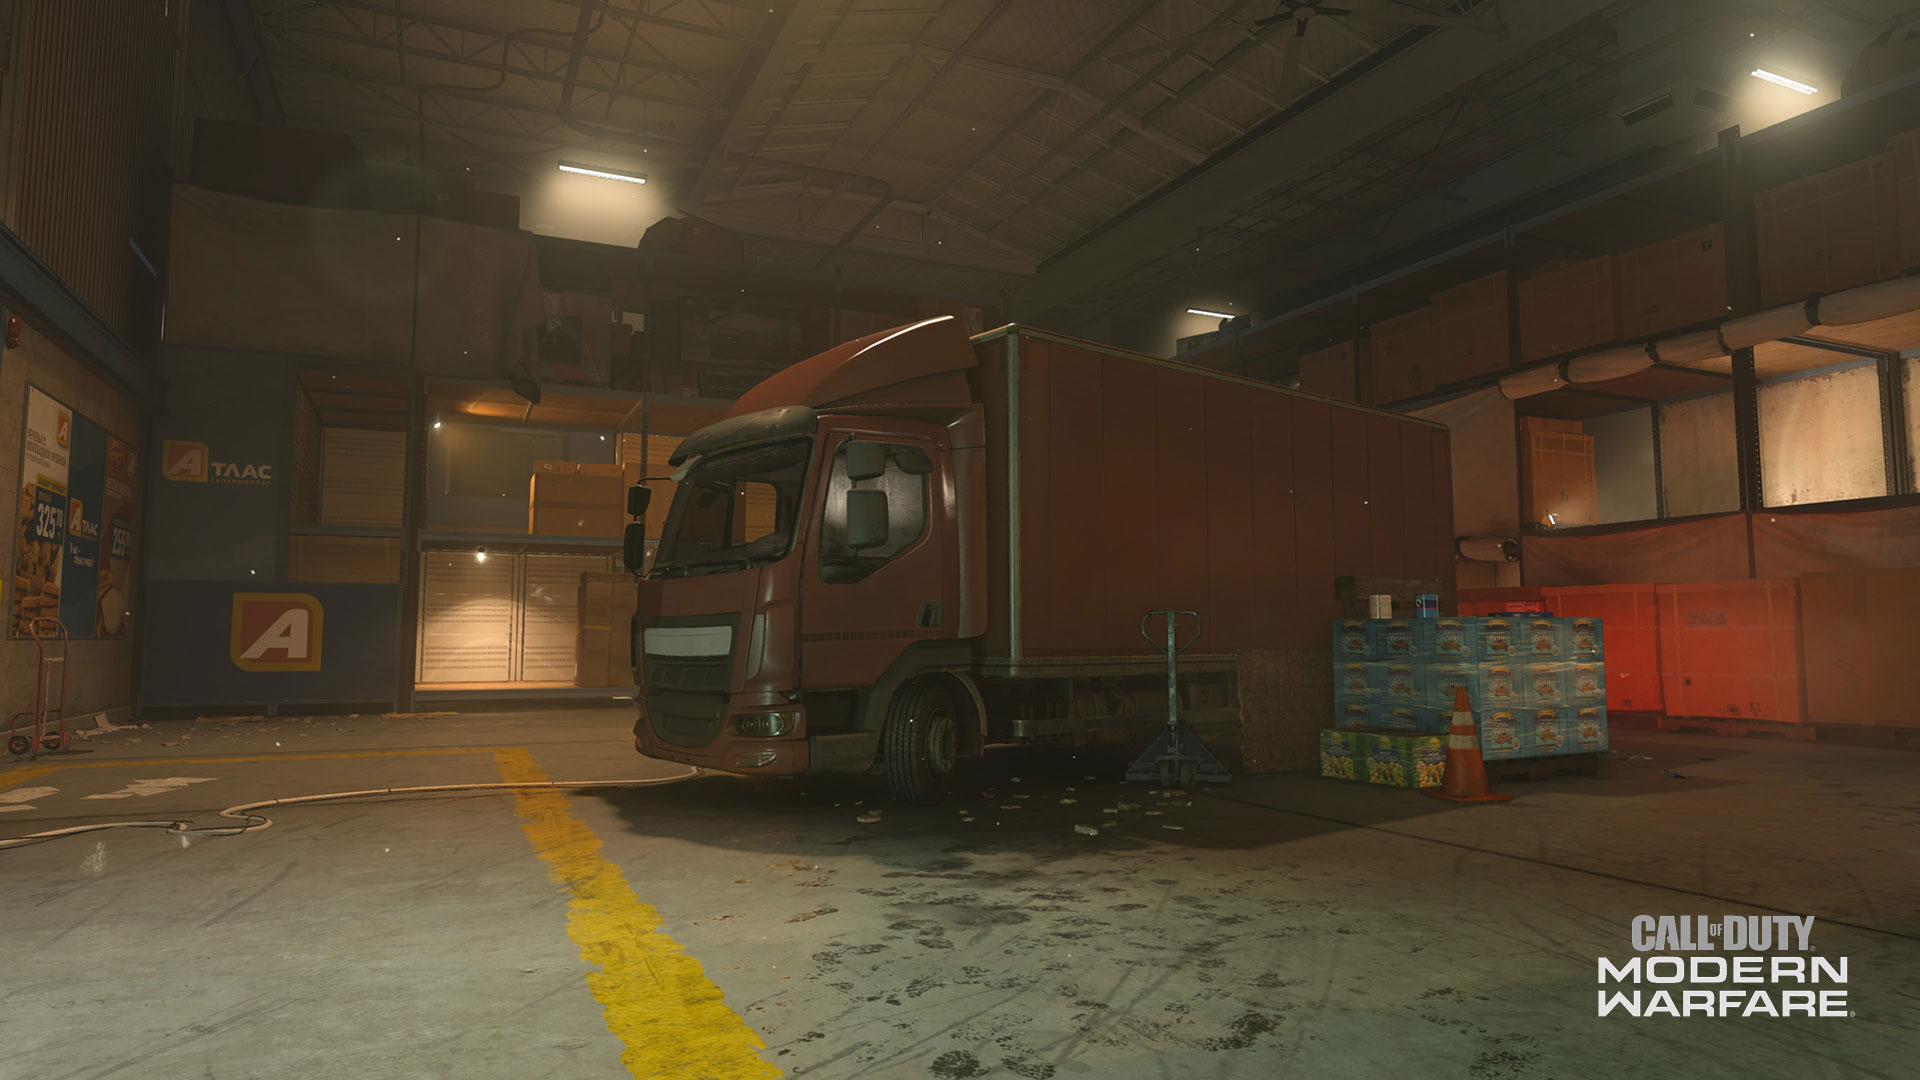 This Week in Call of Duty® - May 18 - Image 7